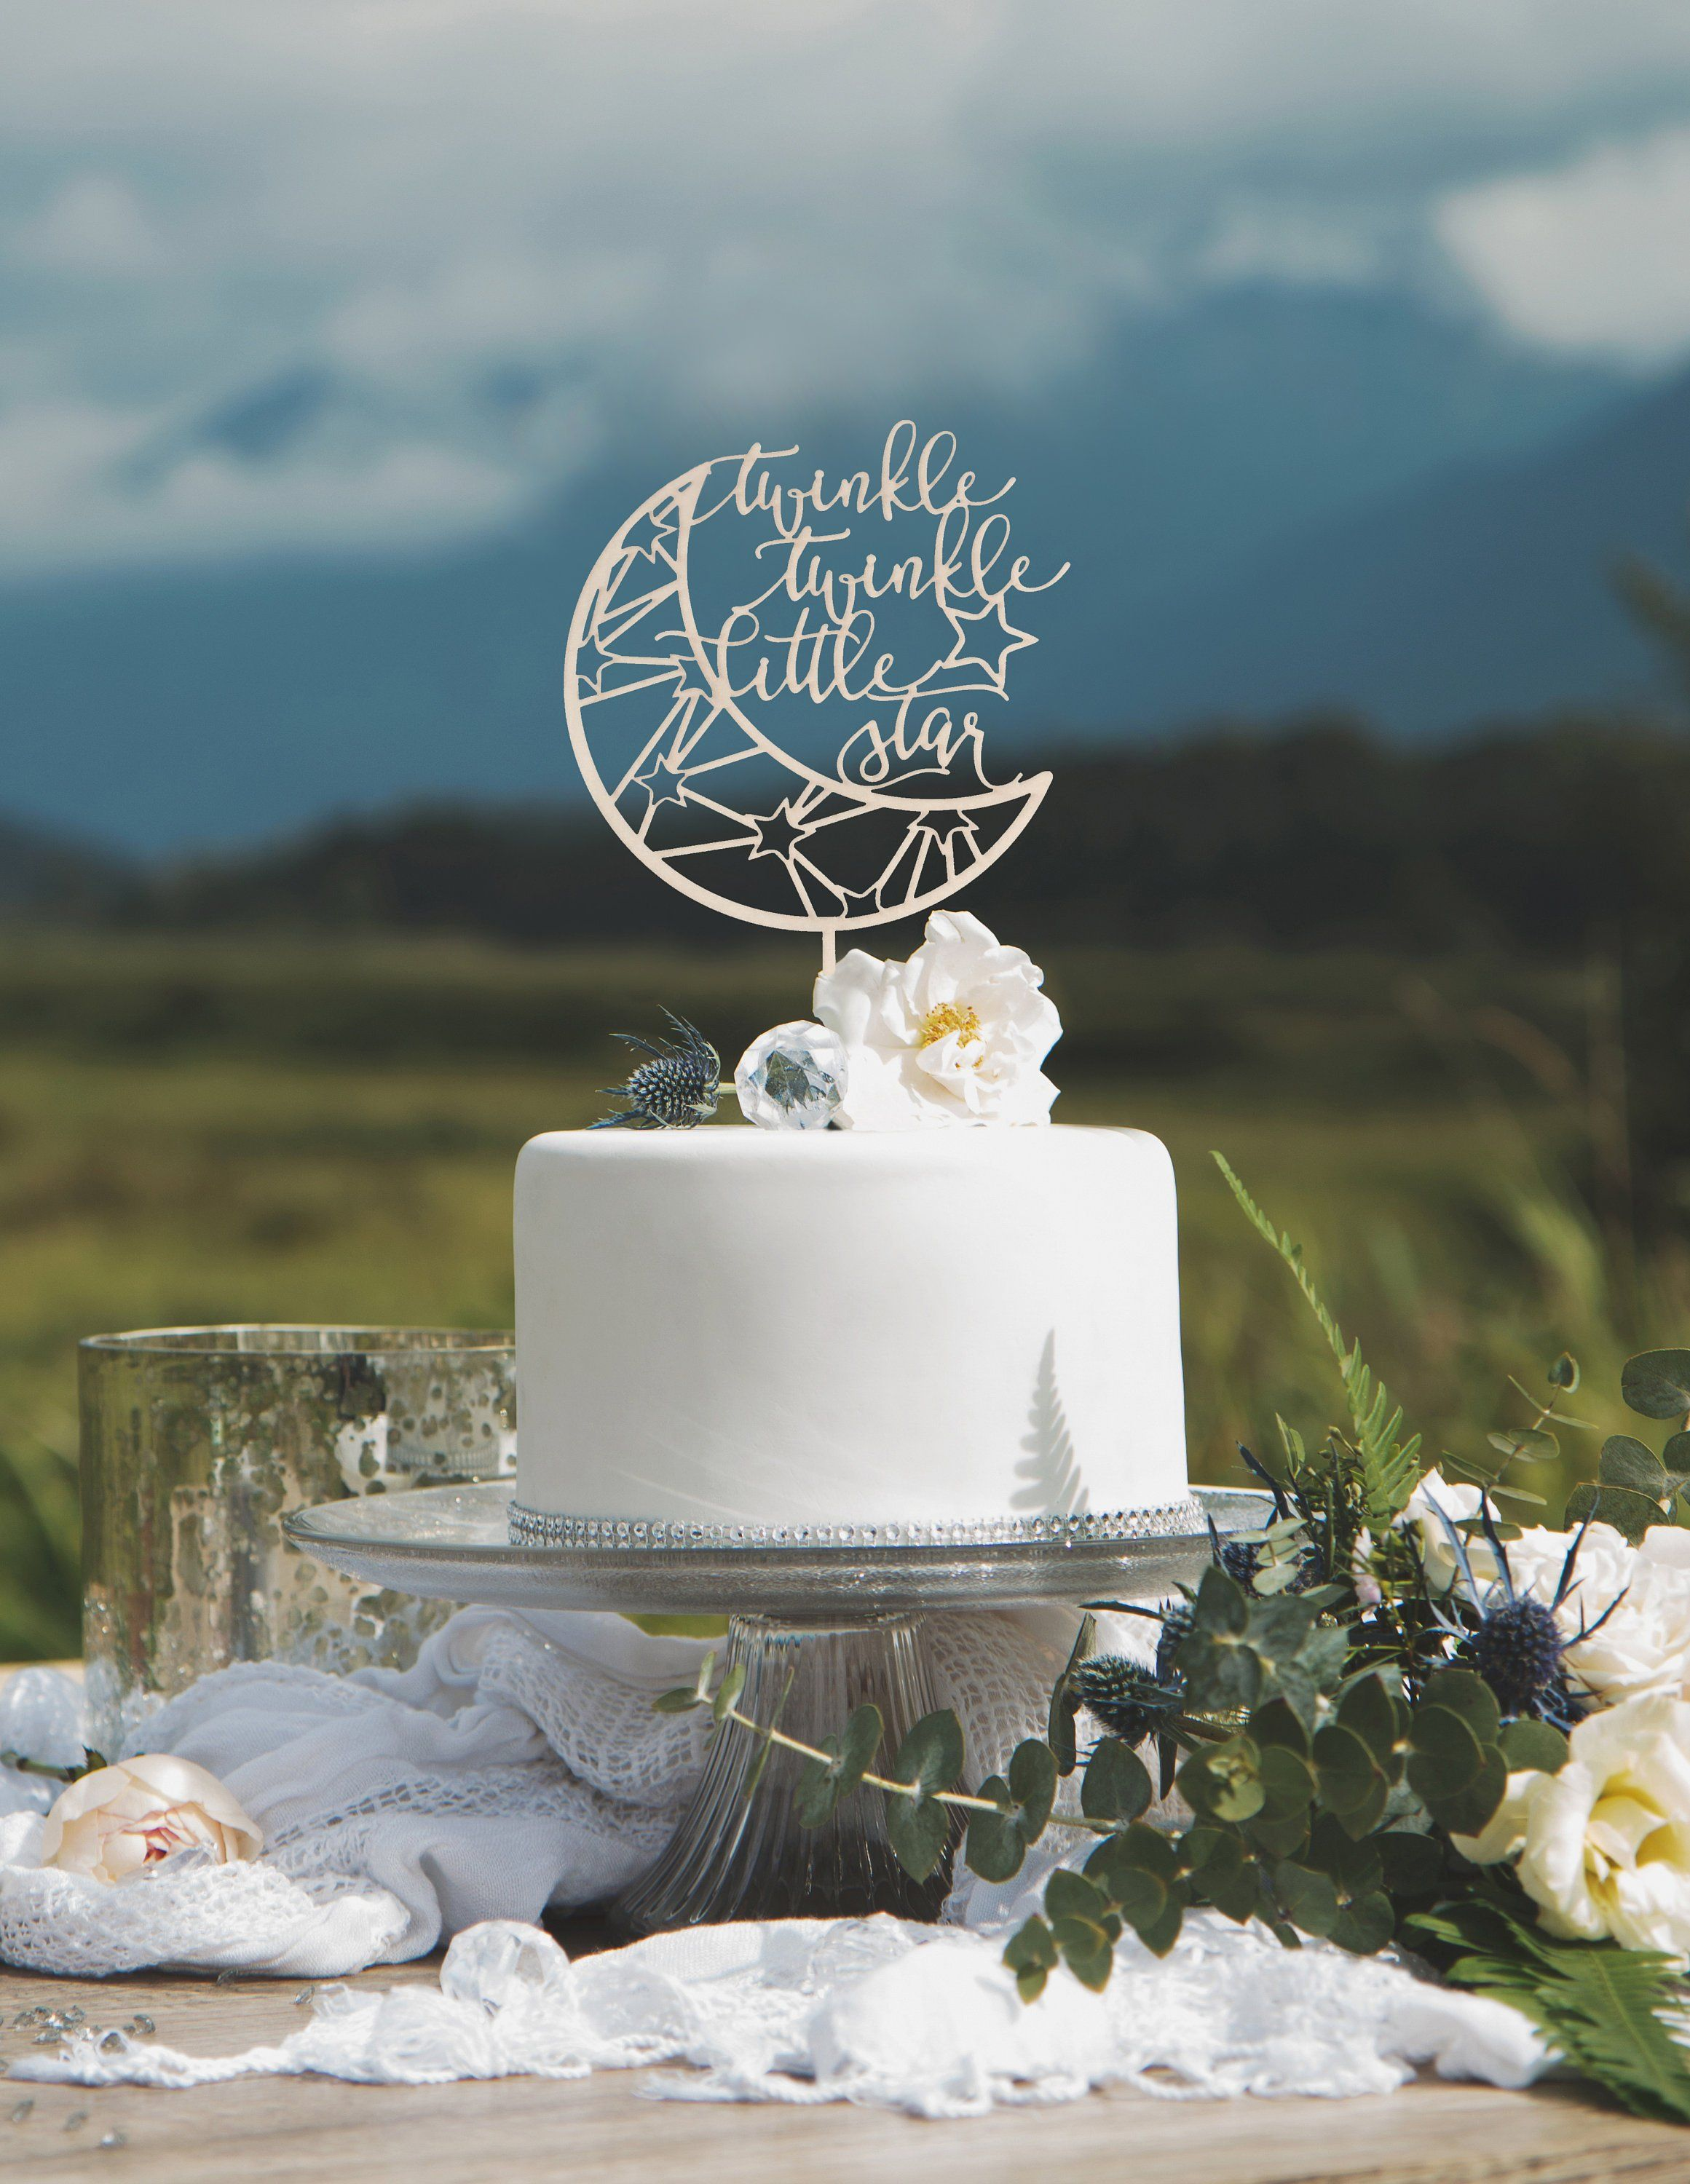 For A Celestial Themed Wedding, This Moon Cake Topper Is Just What You Need!